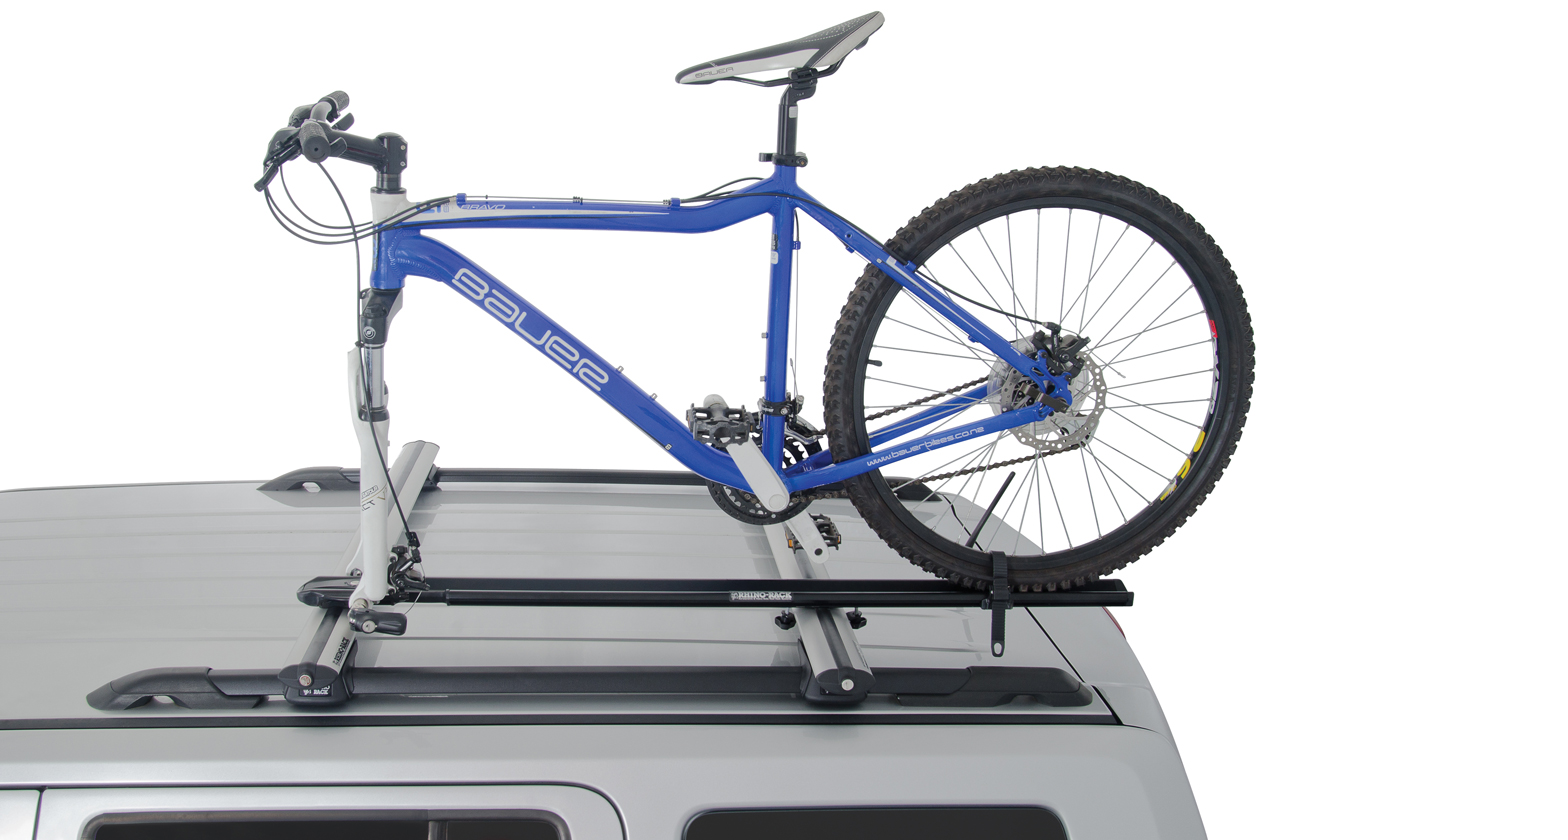 Rbc036 Road Warrior Bike Carrier Rhino Rack